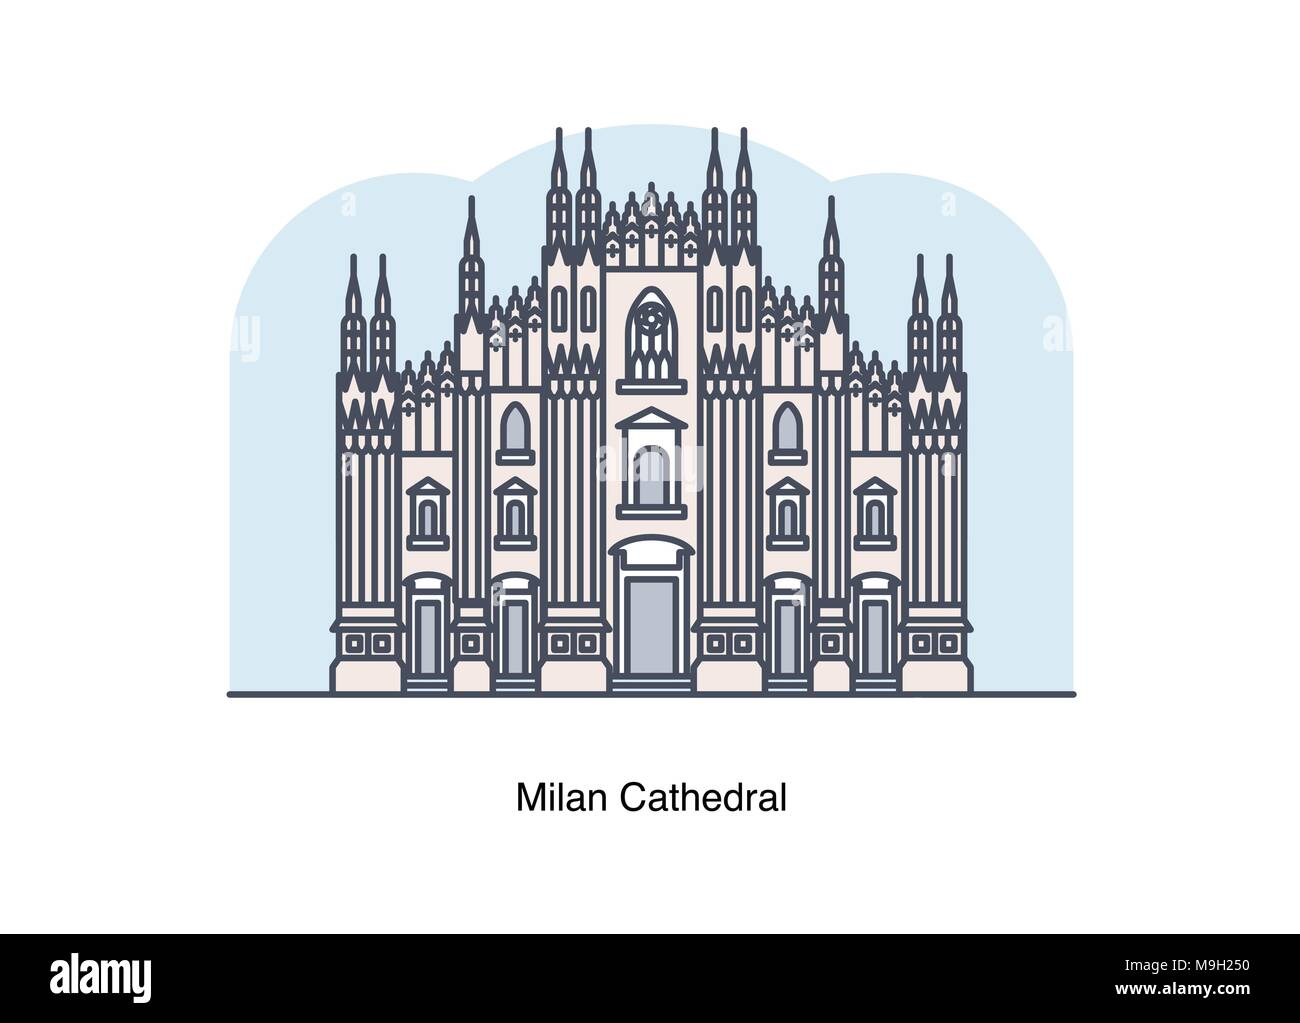 Vector line illustration of Milan Cathedral, Milan, Italy. - Stock Image